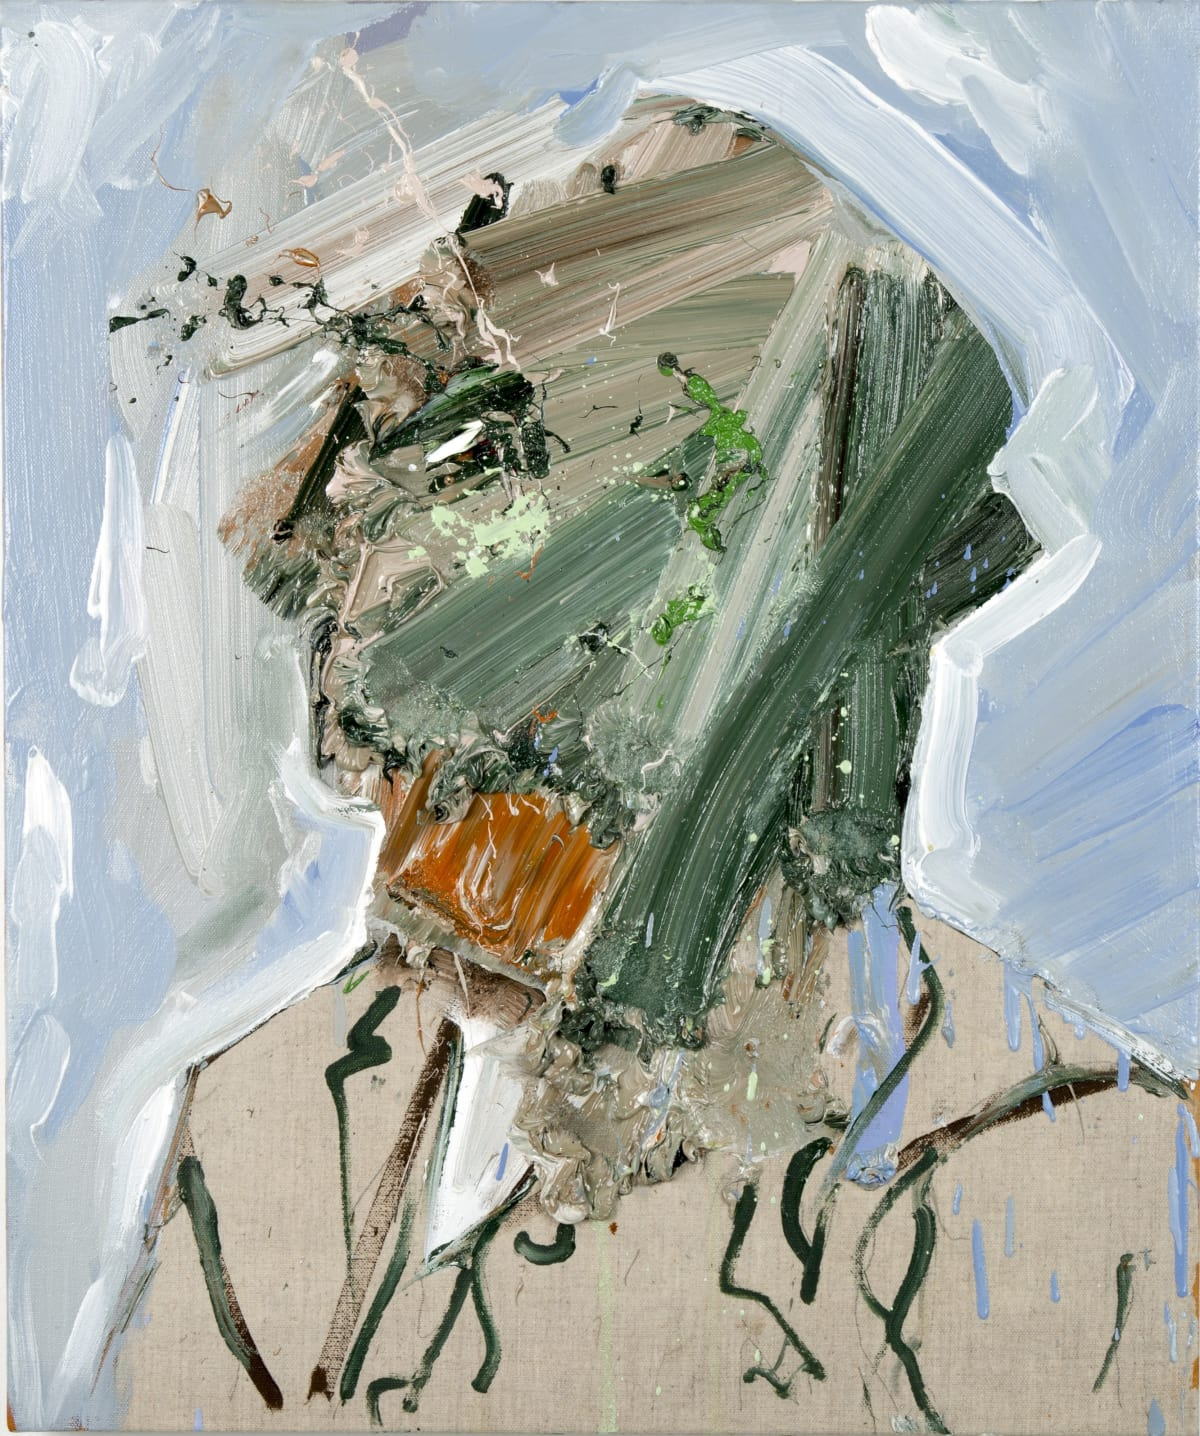 Toby Raine Van Gogh - Beard (After Van Gogh), 2016 Oil on linen 23.8 x 19.9 in 60.5 x 50.5 cm